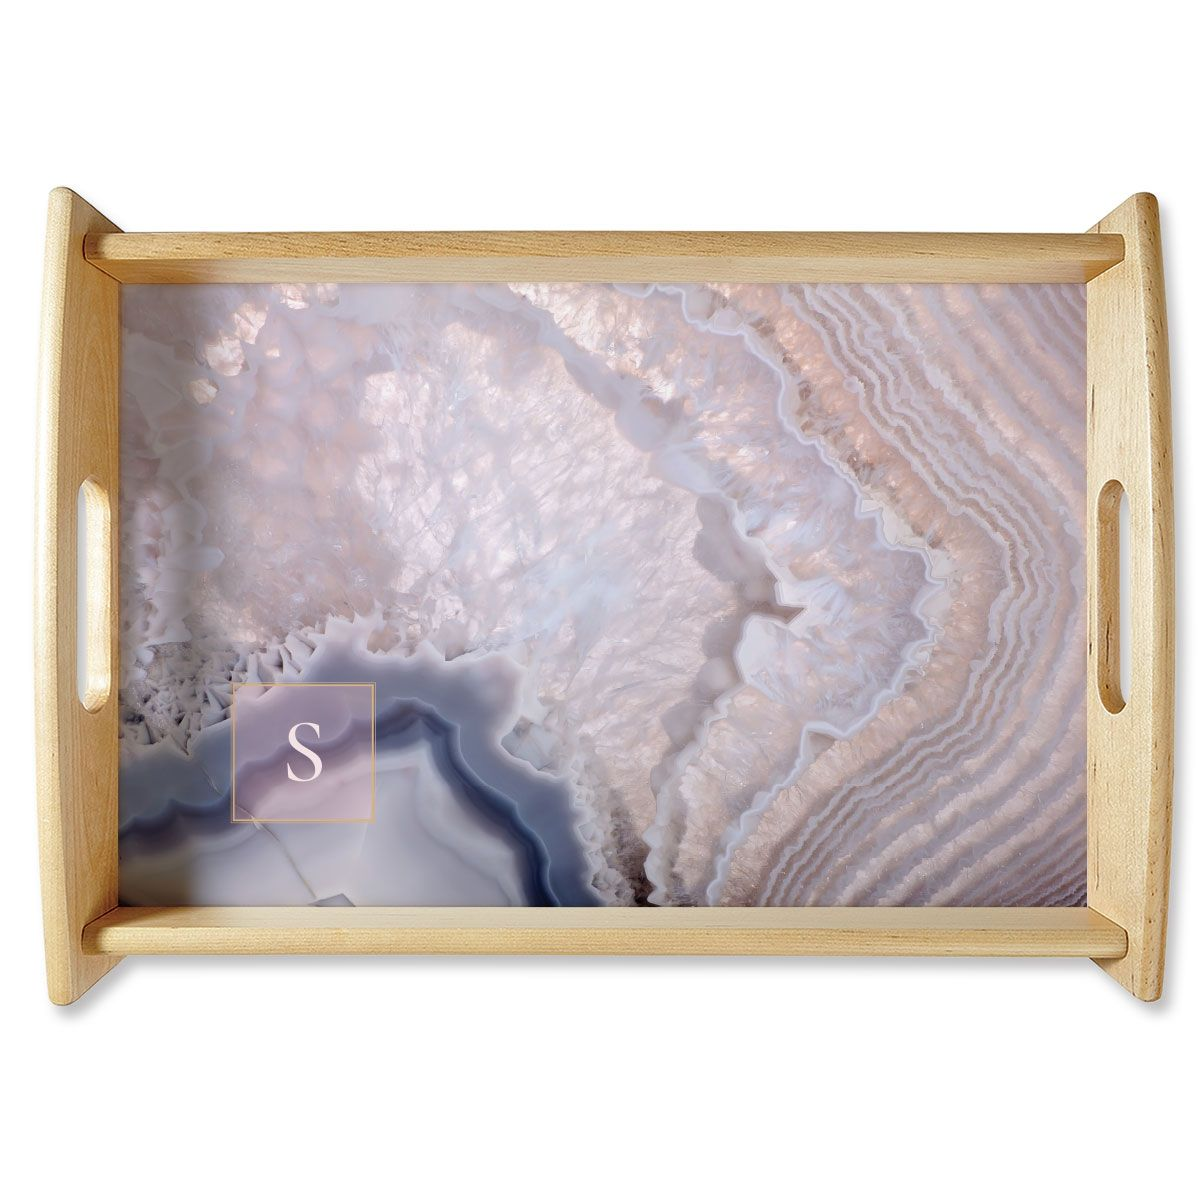 Initialed Agate Natural Wood Serving Tray